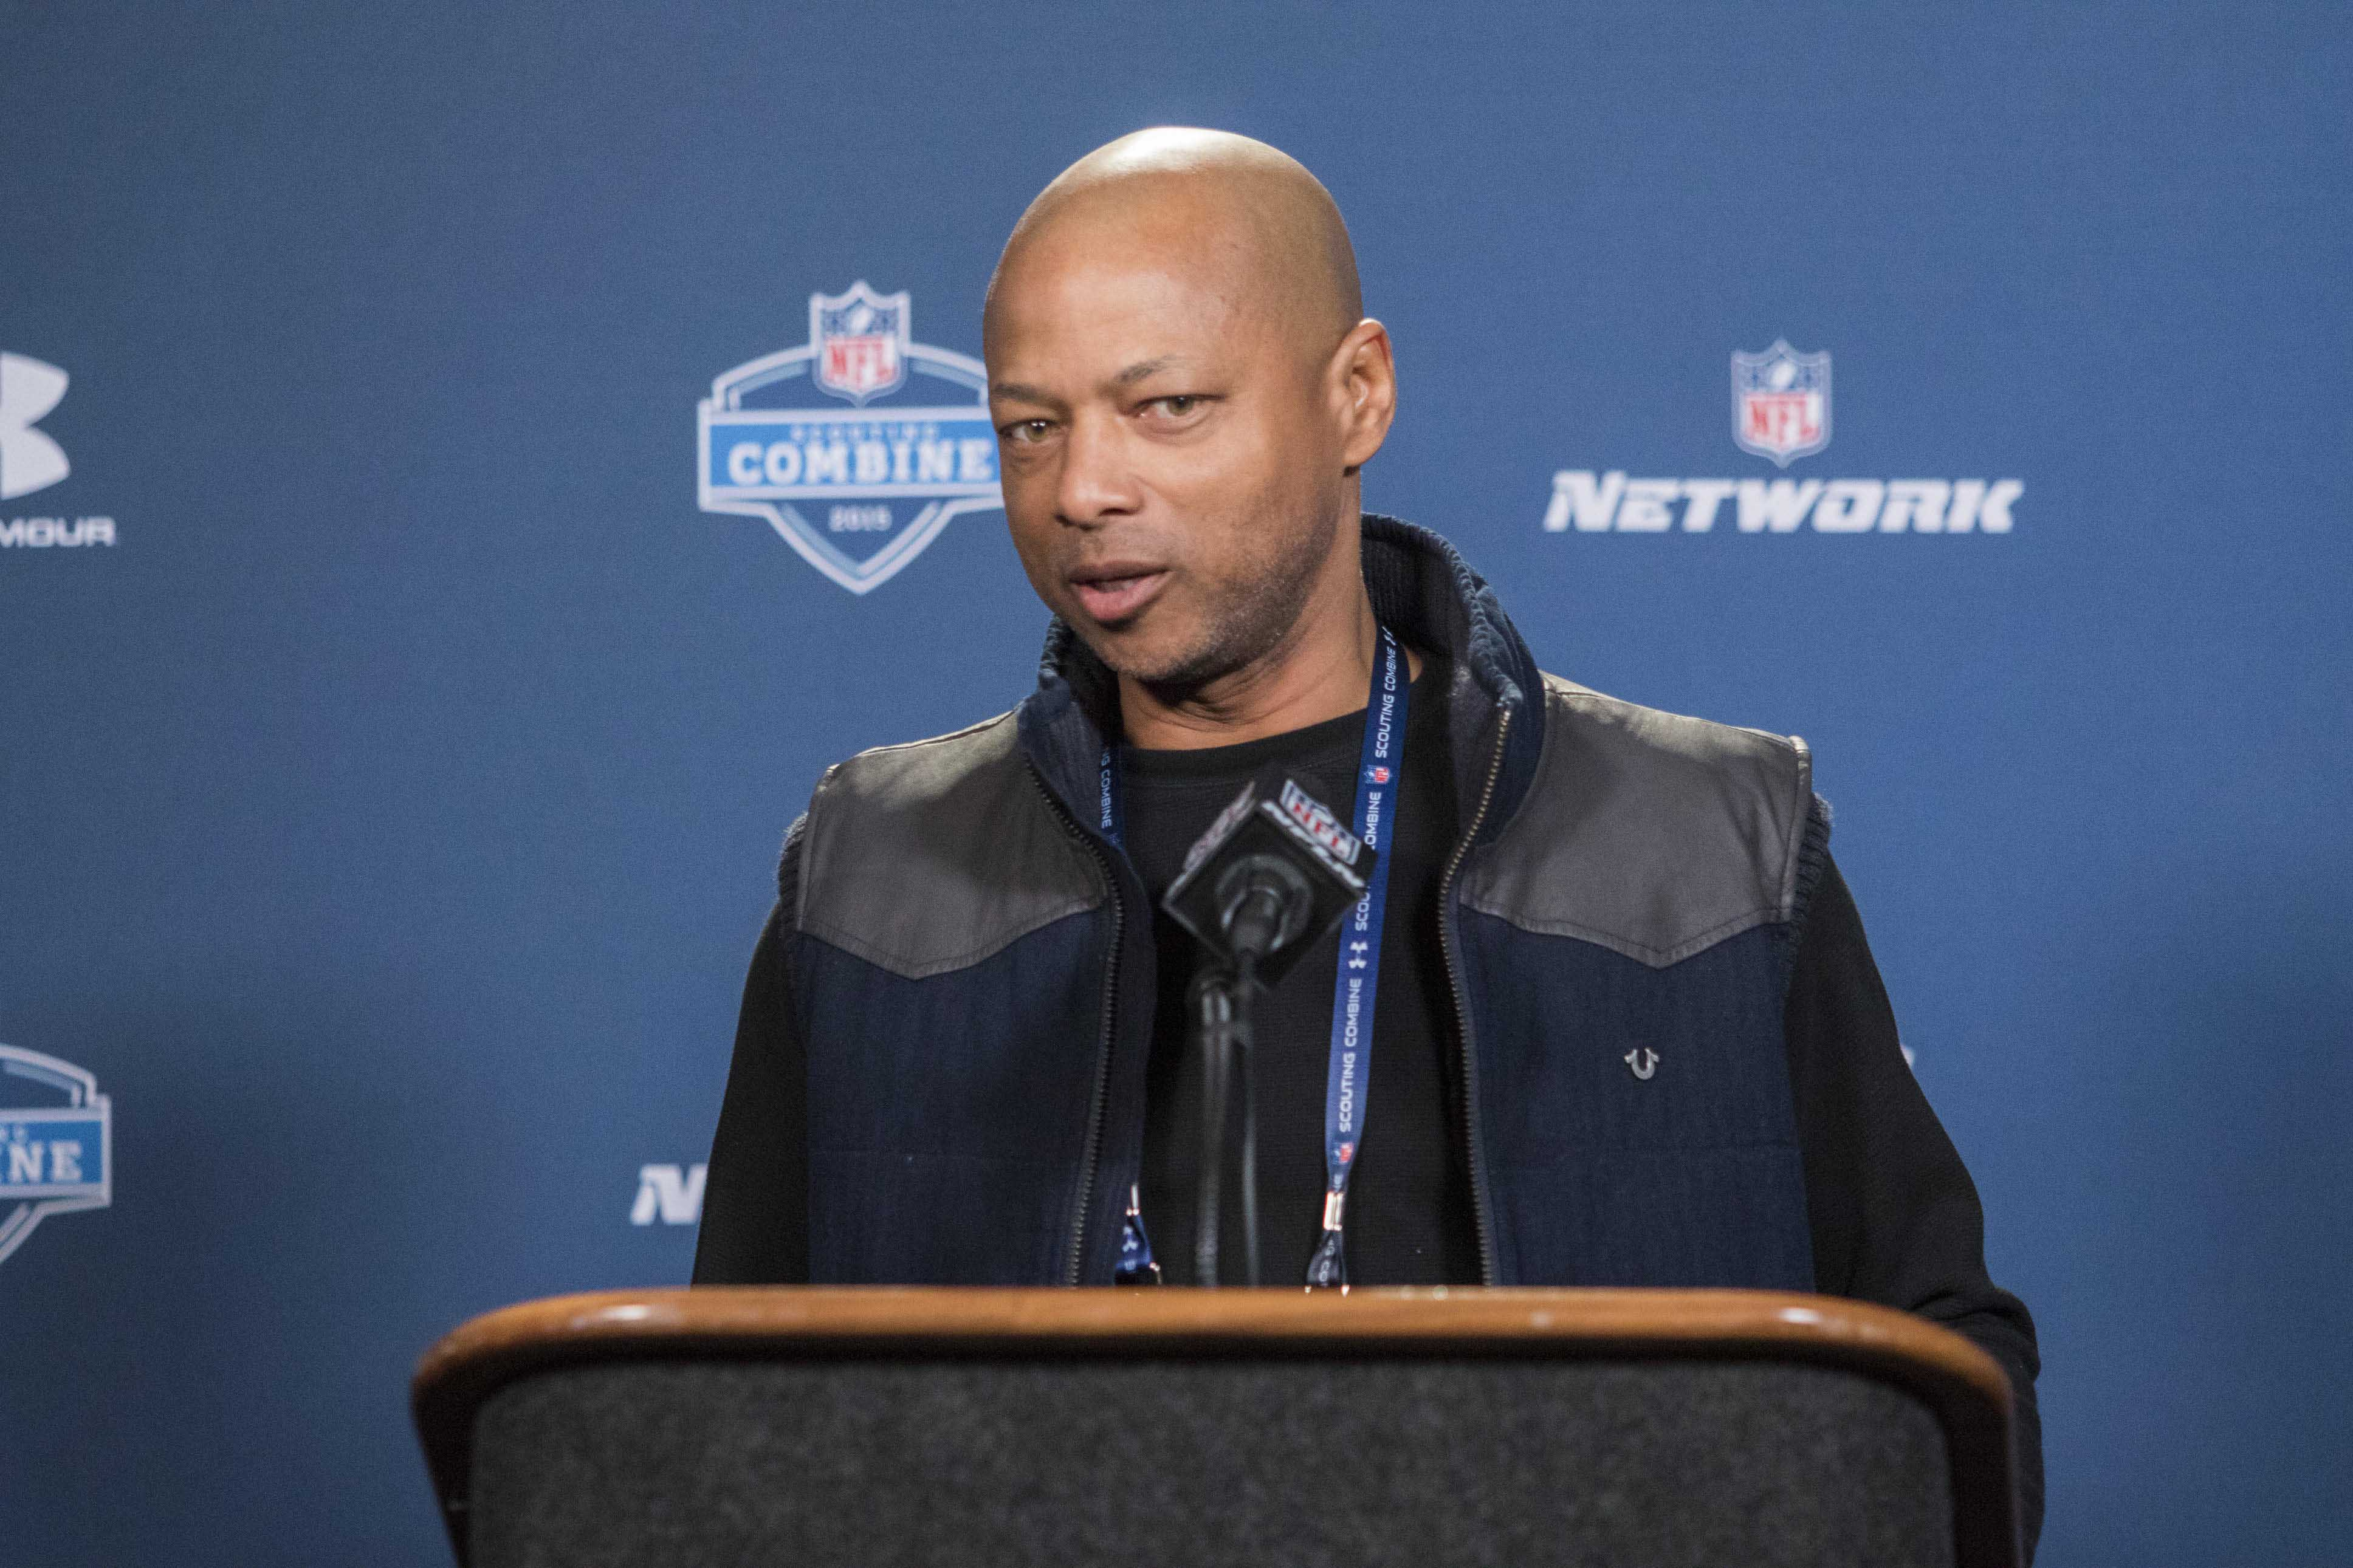 Giants GM Jerry Reese